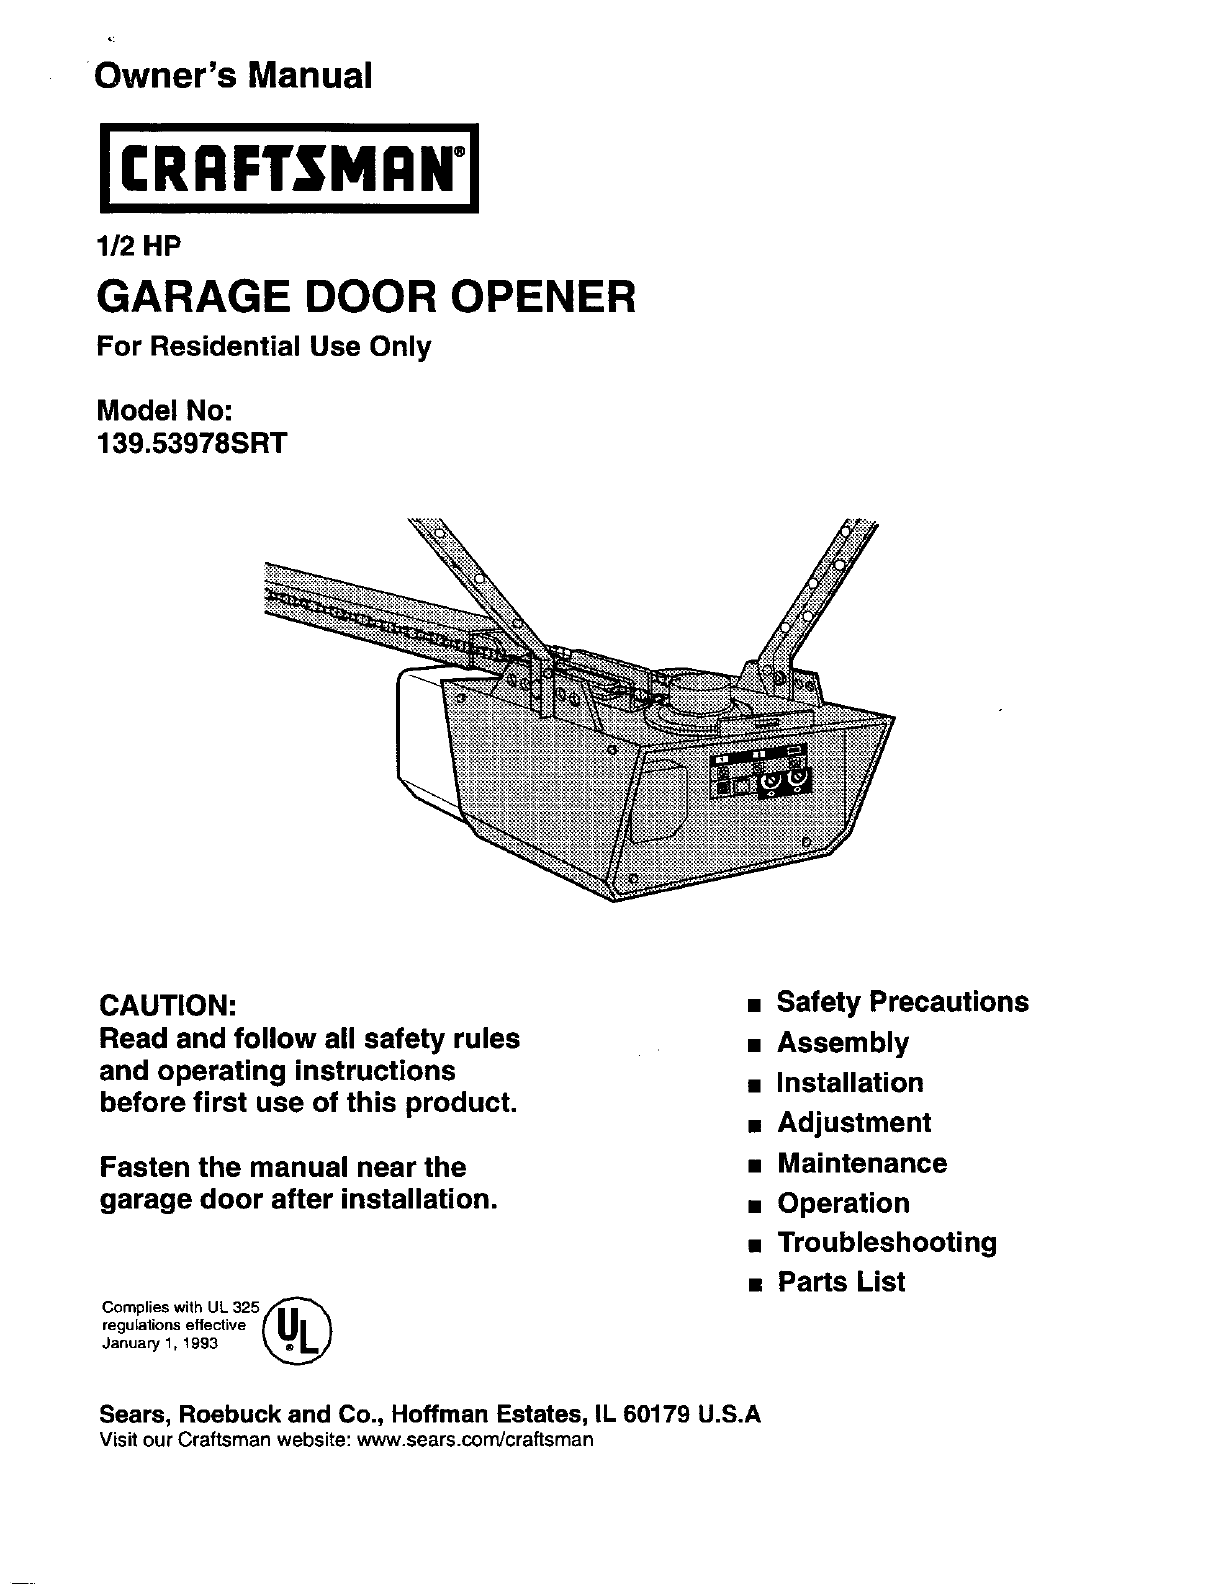 0f05b938 d0cb 4872 aeee 96ef63eab4f3 bg1 craftsman garage door opener 139 53978srt user guide craftsman garage door wiring diagram at alyssarenee.co